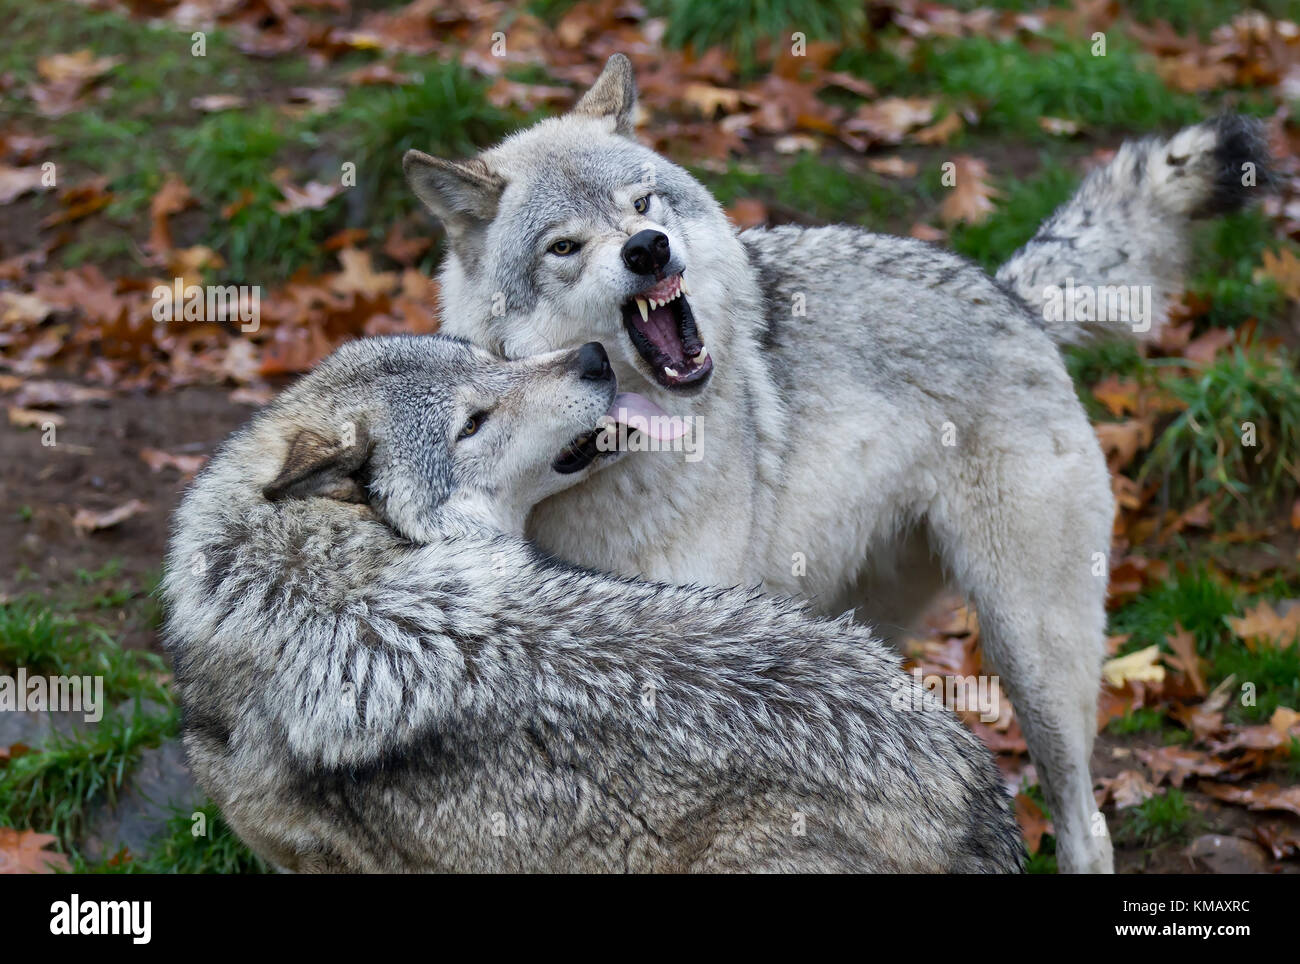 Timber wolves or Grey wolf (Canis lupus) playing with each other in autumn in Canada - Stock Image